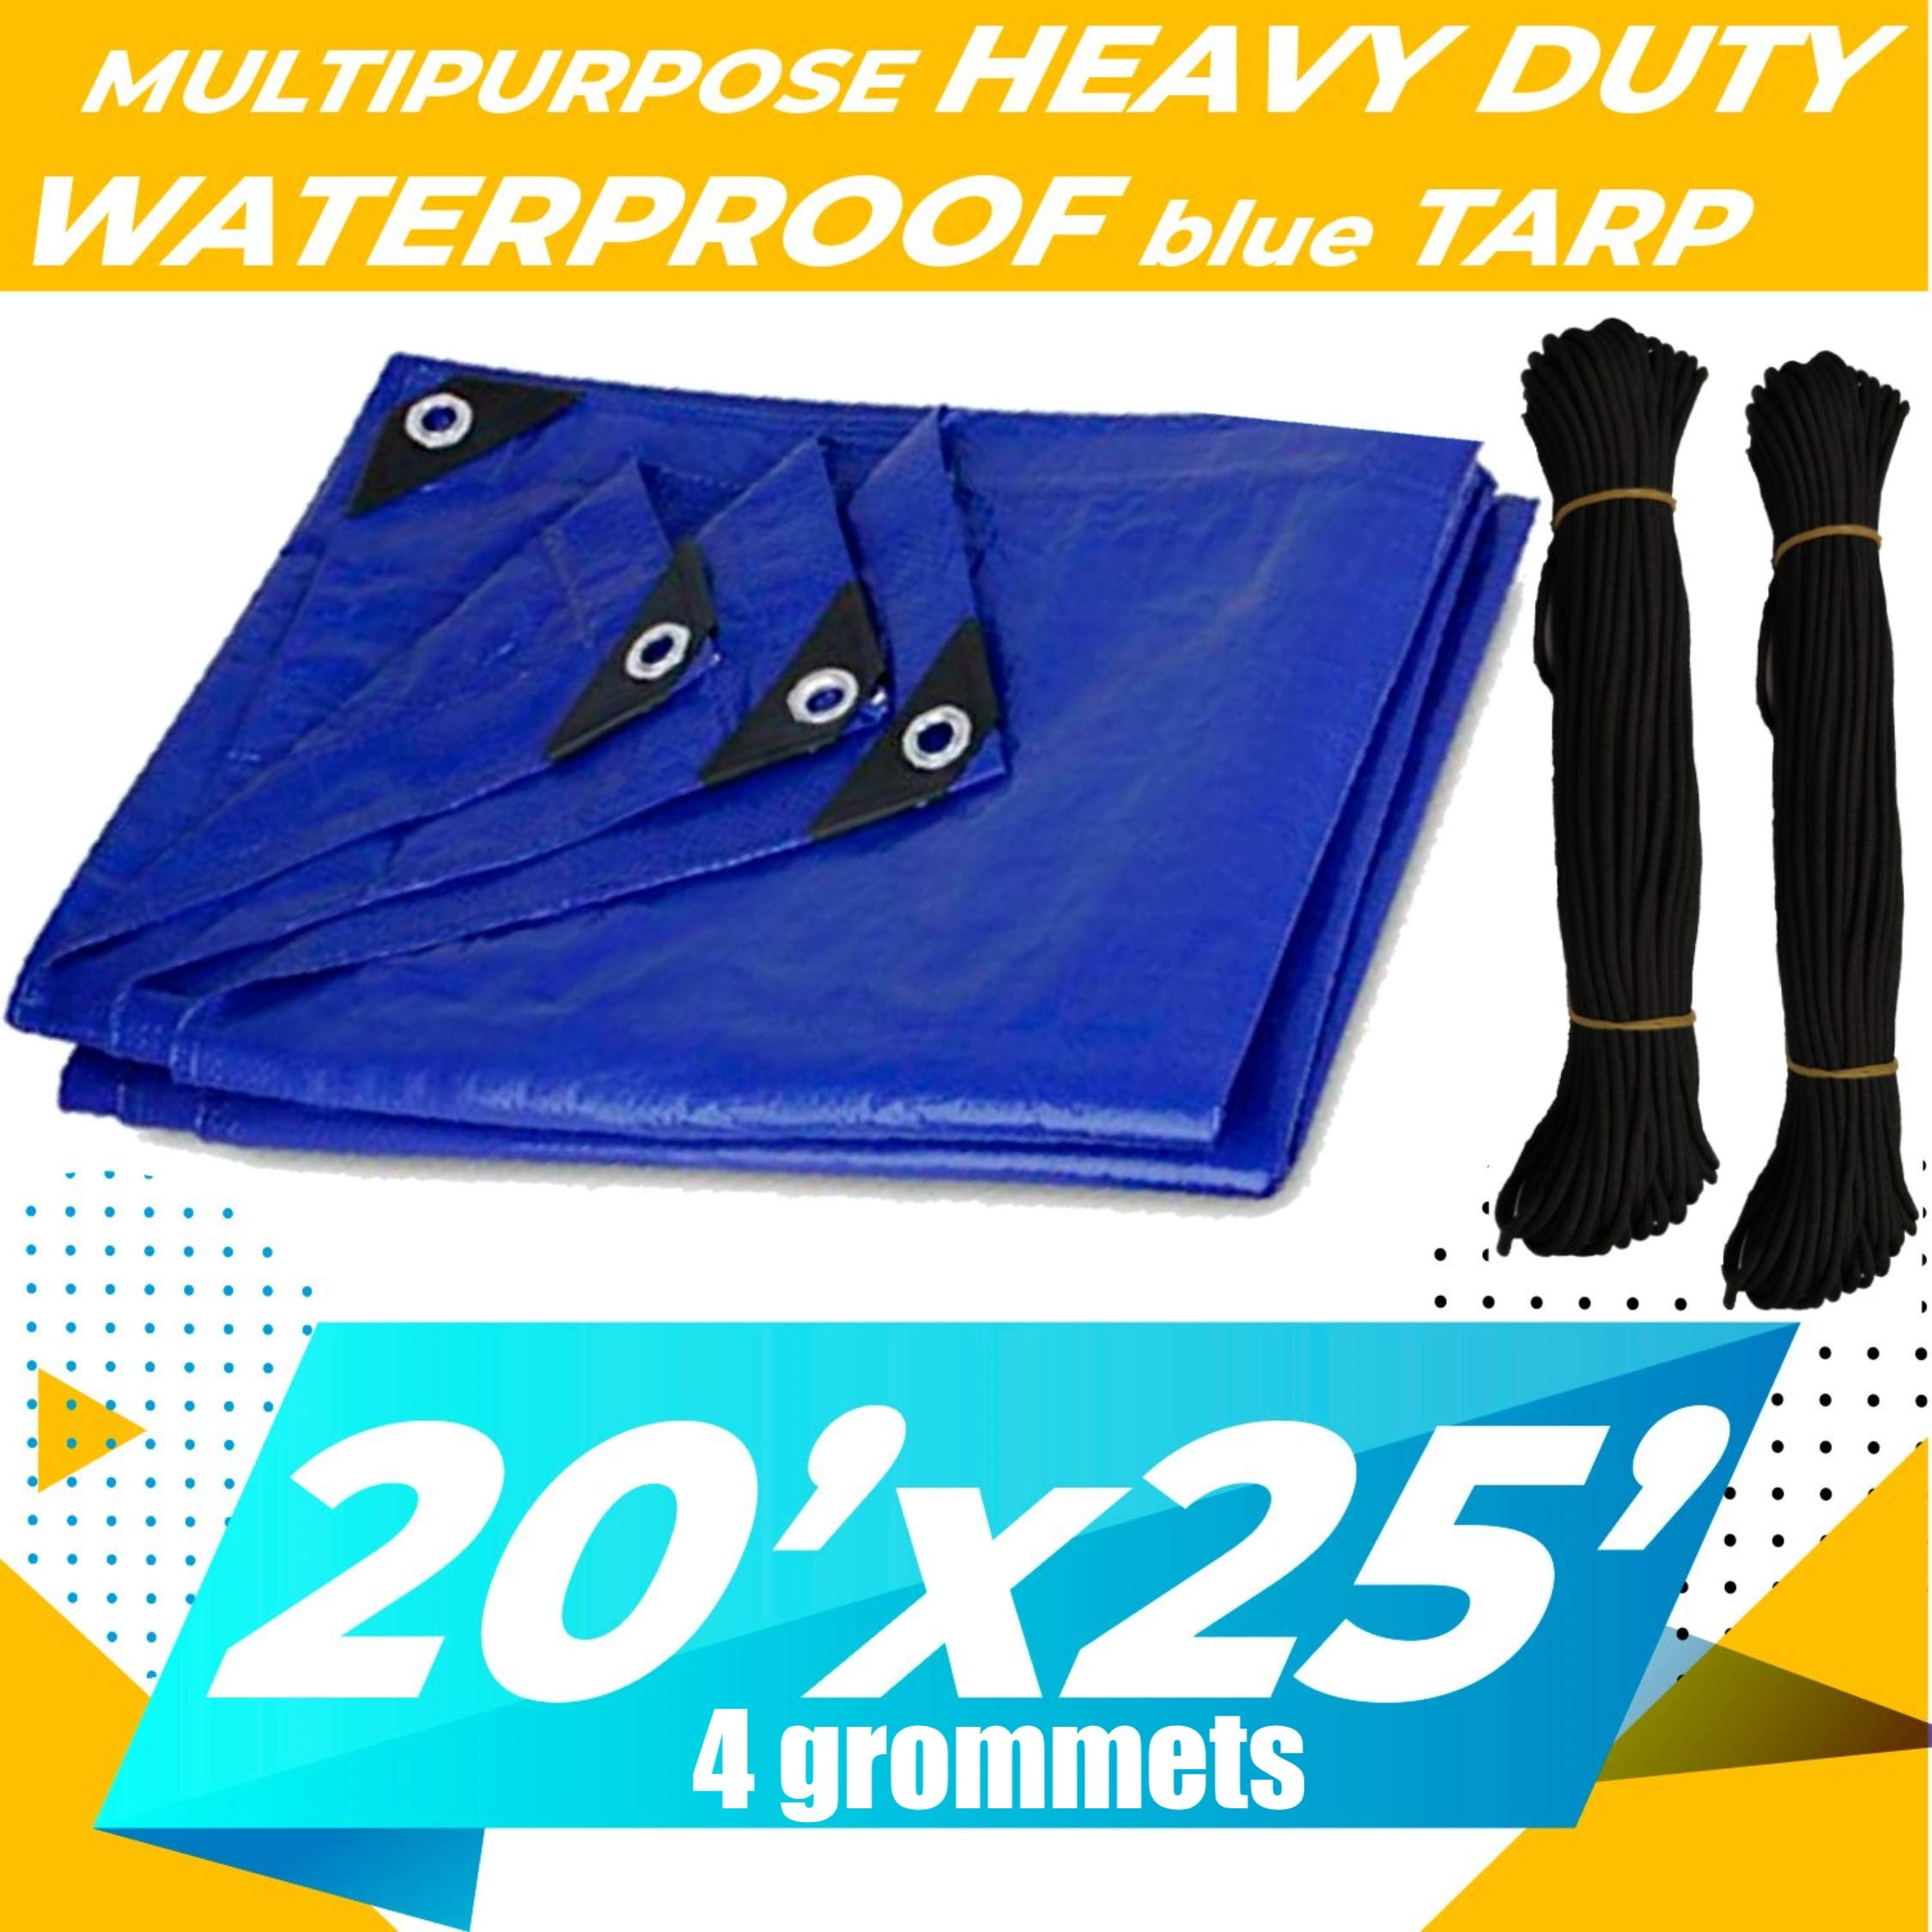 20'x25' Heavy Duty Waterproof Tarp - Multi-Purpose Blue Tarpaulin with  4 Grommets, Reinforced Edges and Nylon Paracord for Outdoor Rain Shelter, Ground Cover, Boat, RV, Car, Roof or Pool Cover by Amart